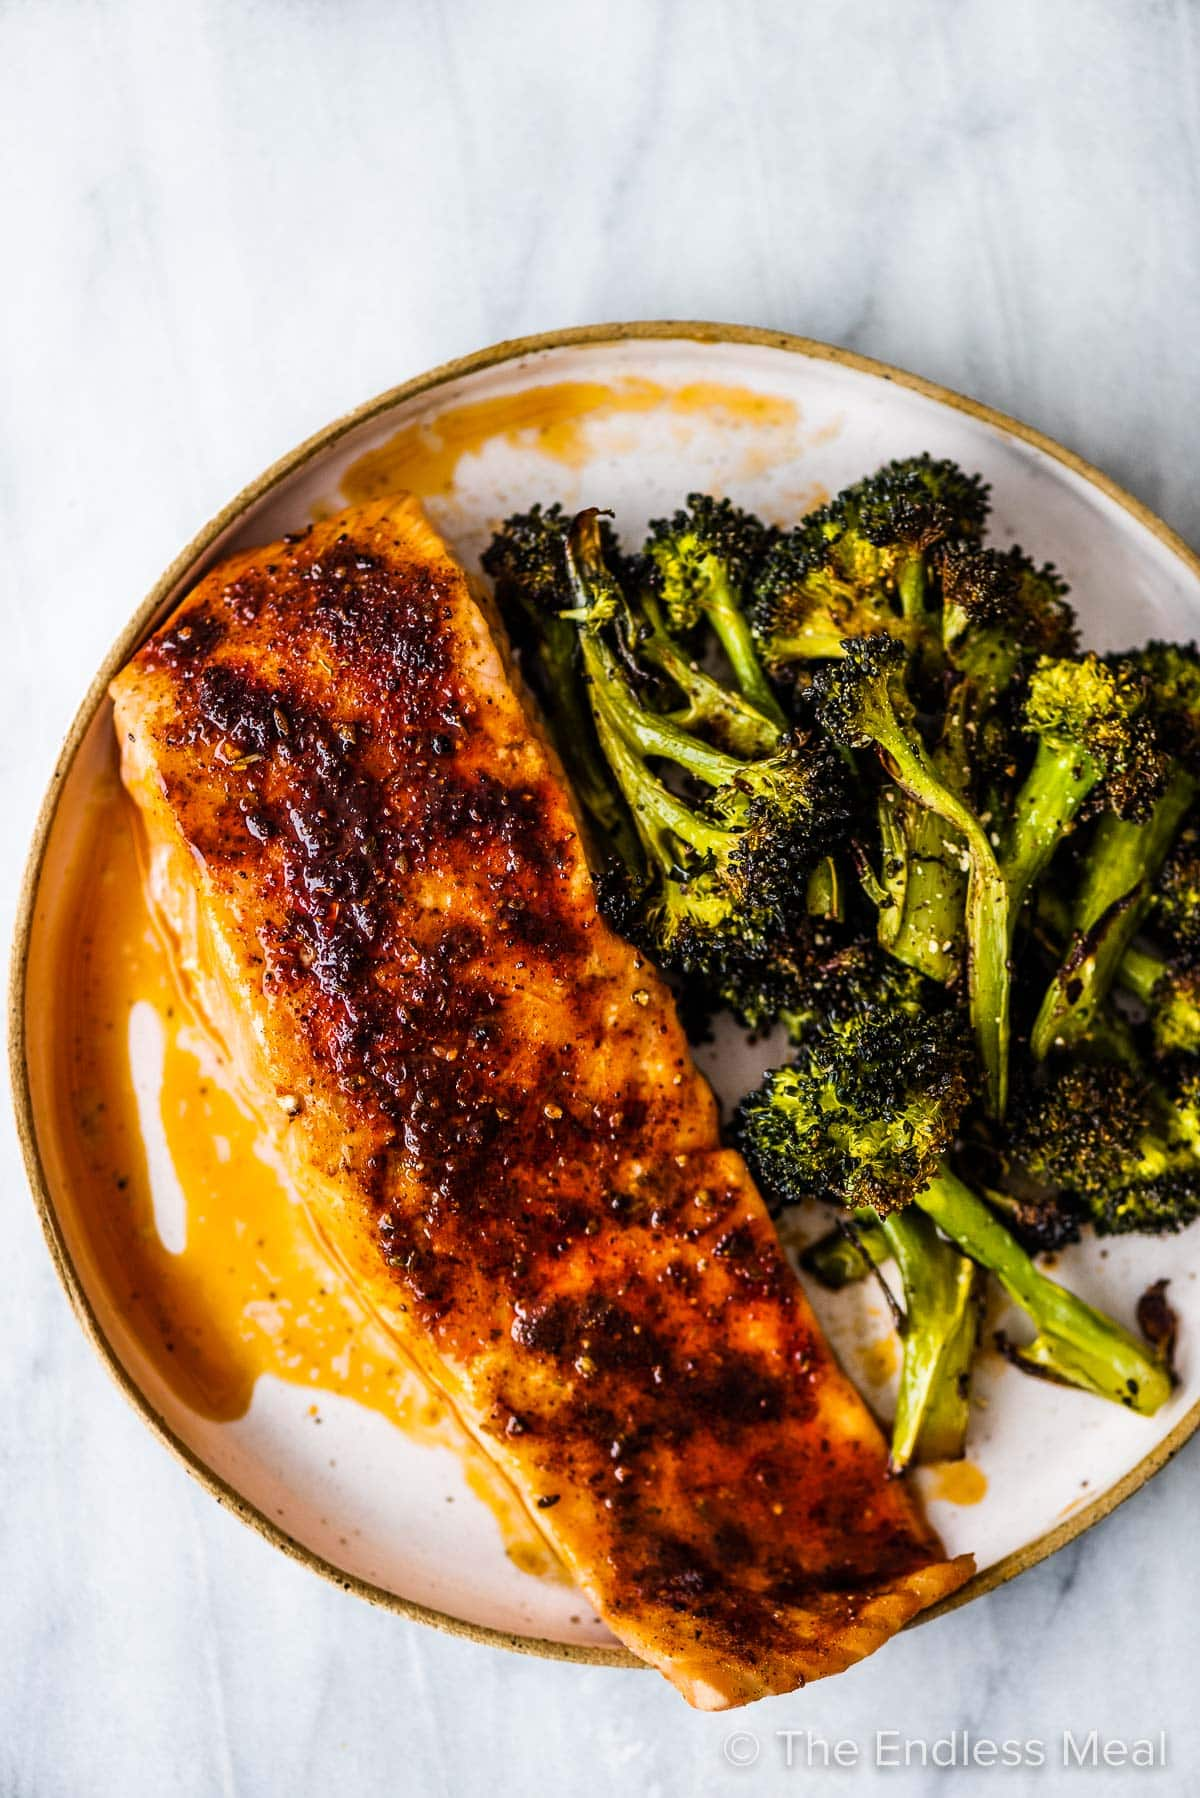 A piece of baked salmon on a plate with a side of broccoli.